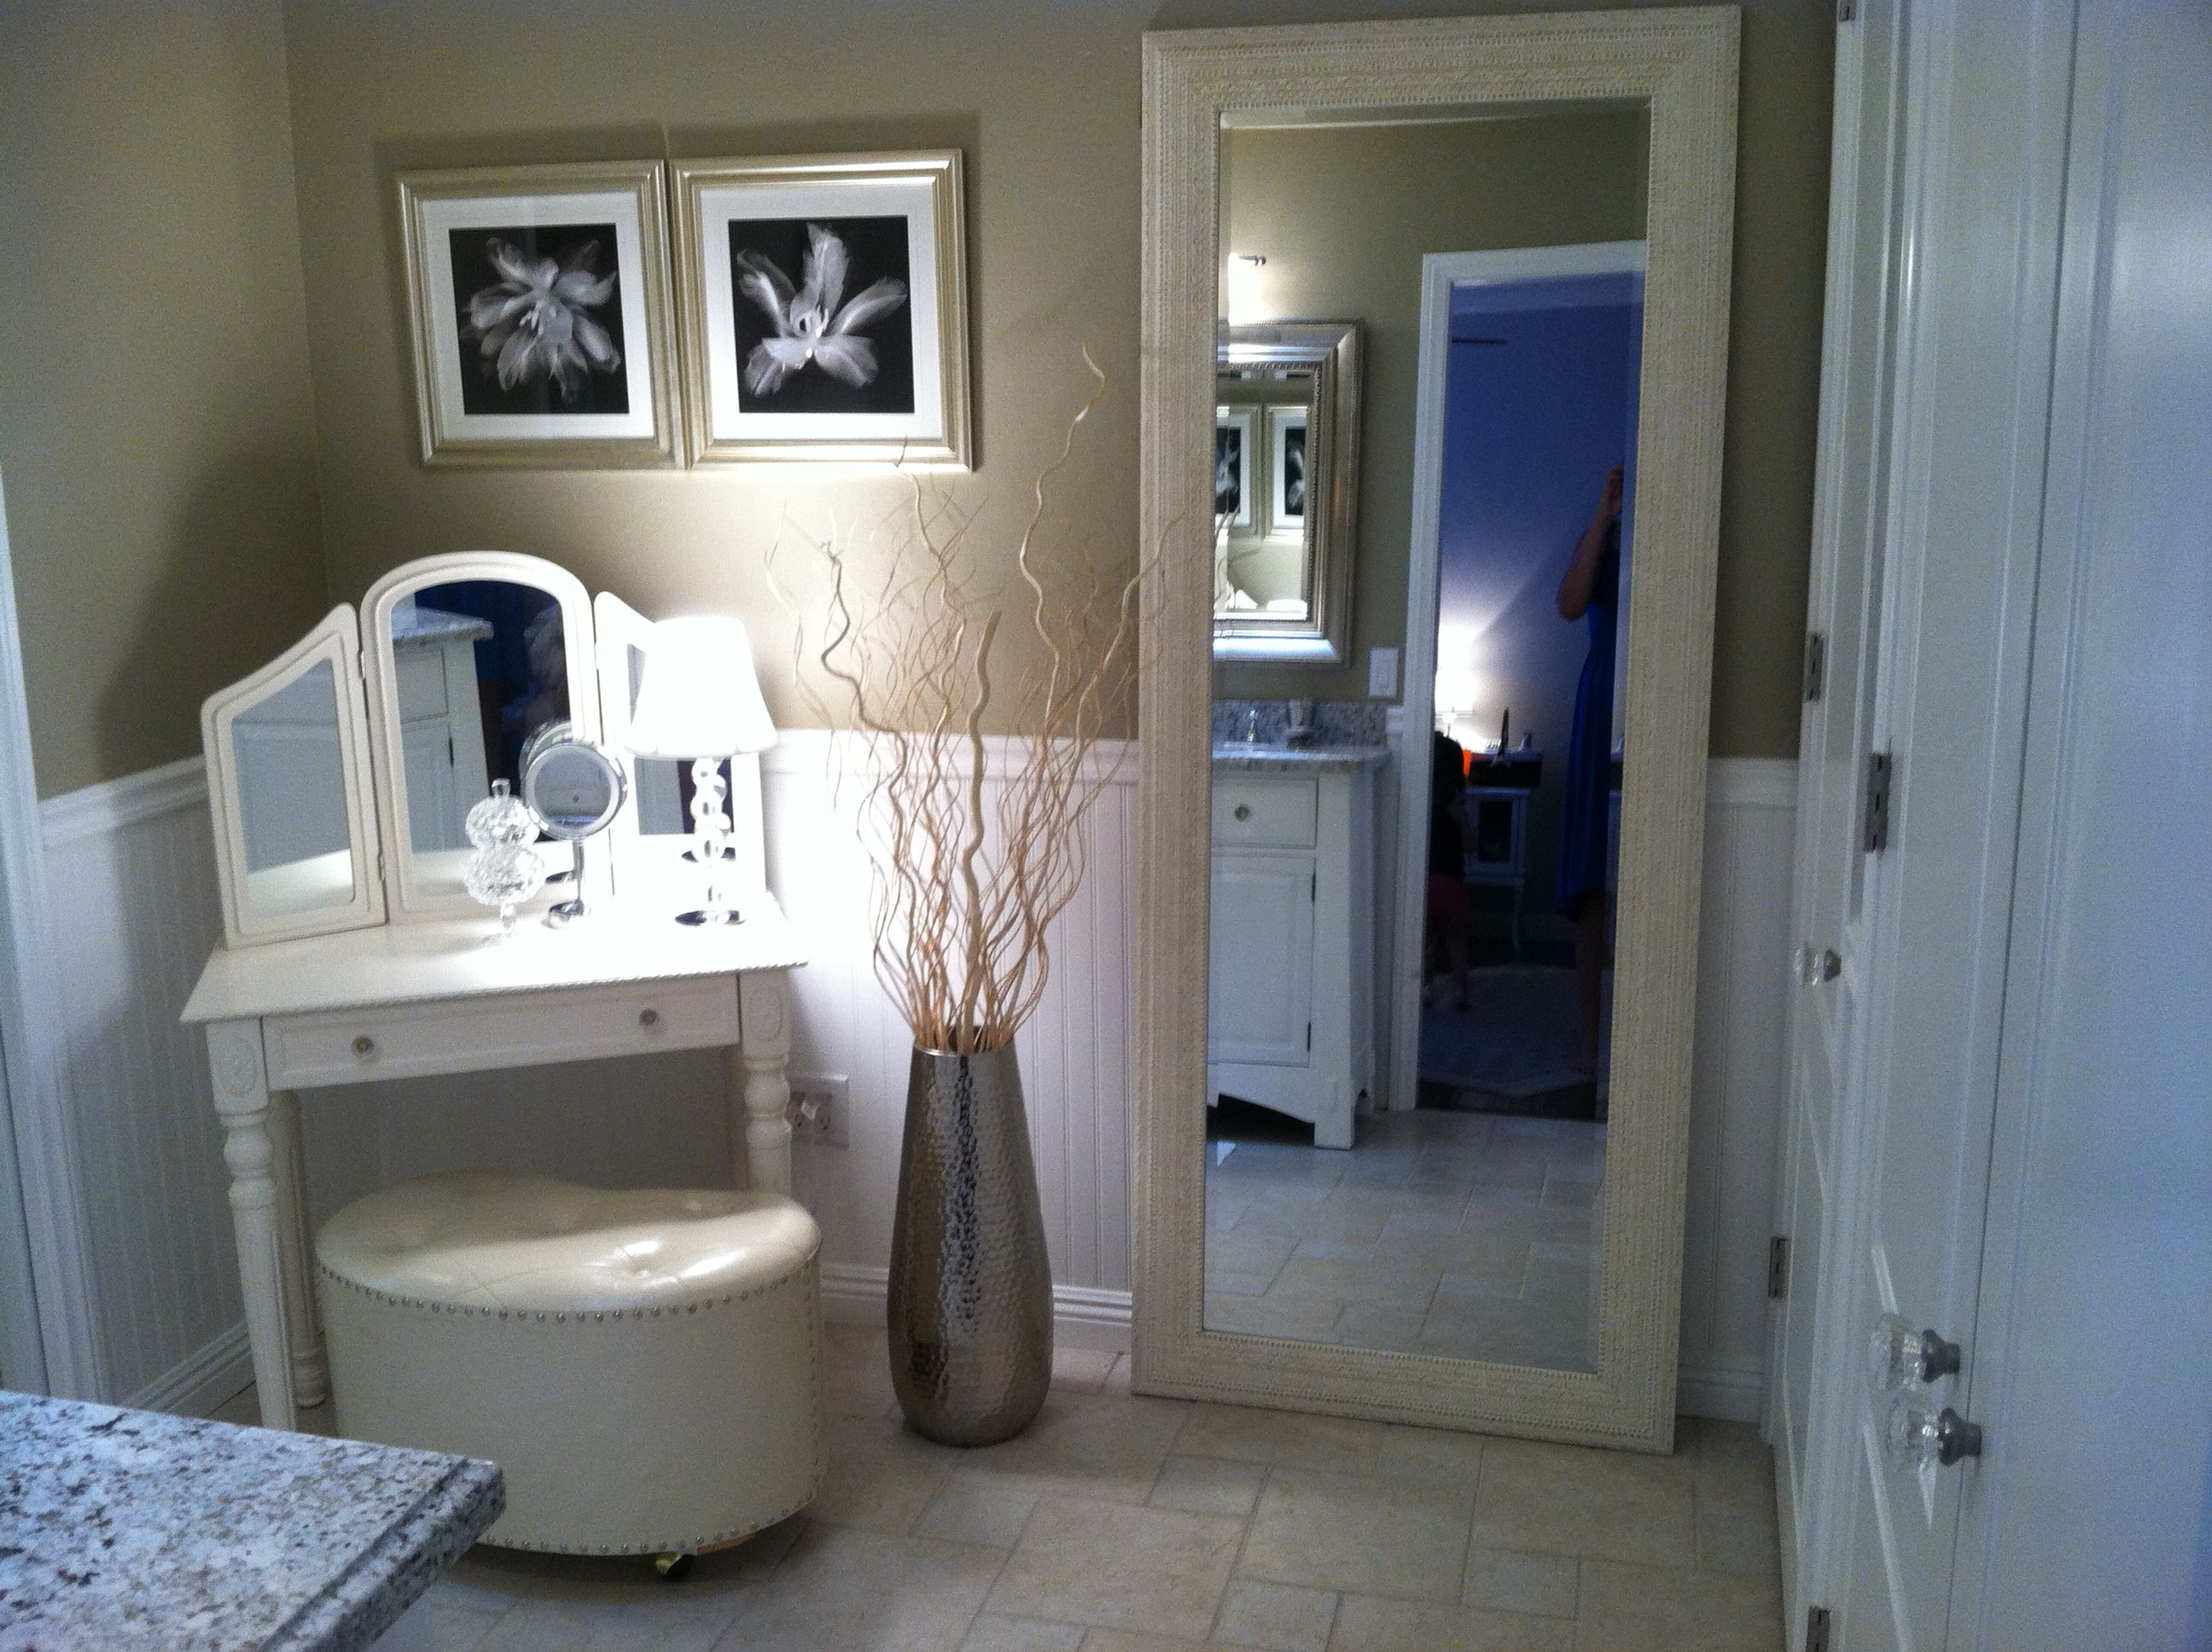 Master bathroom paint color pebble stone from behr for Master bathroom paint colors